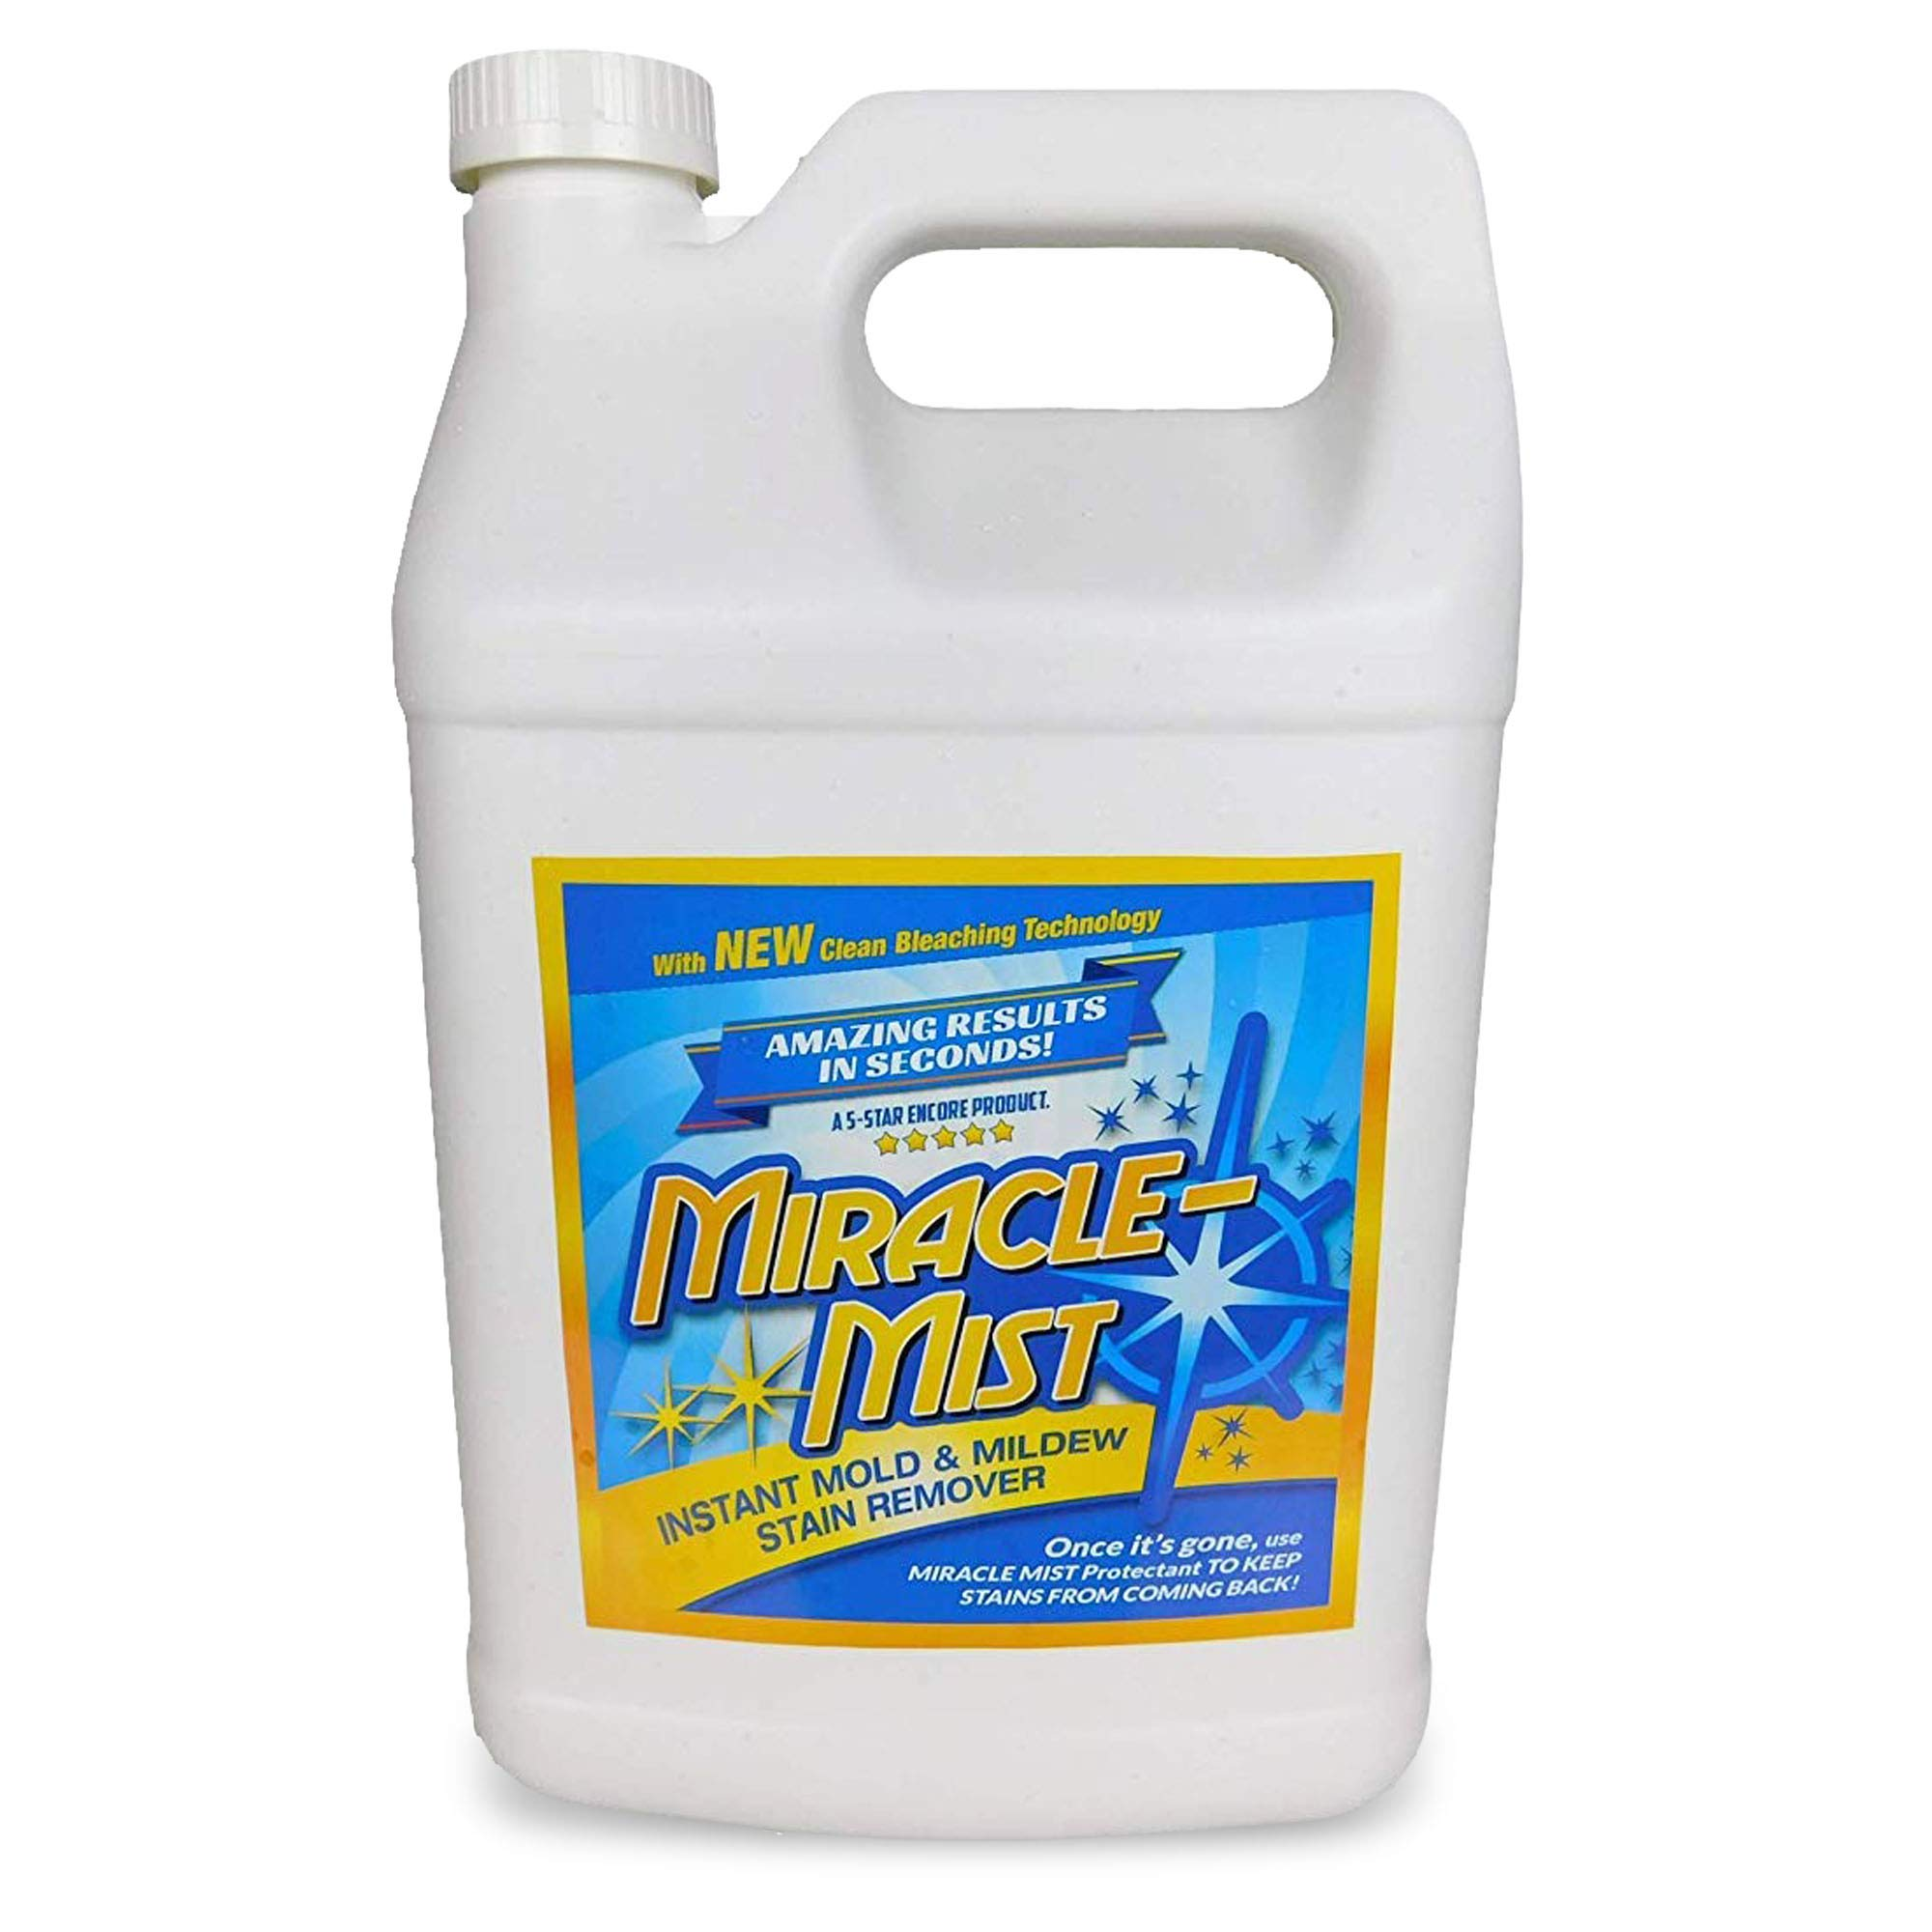 MiracleMist Instant Mold and Mildew Stain Remover for Indoor and Outdoor Use - Long Lasting Bathroom, Deck, Concrete, Vinyl, Tile Cleaner, 1 Gallon by MiracleMist